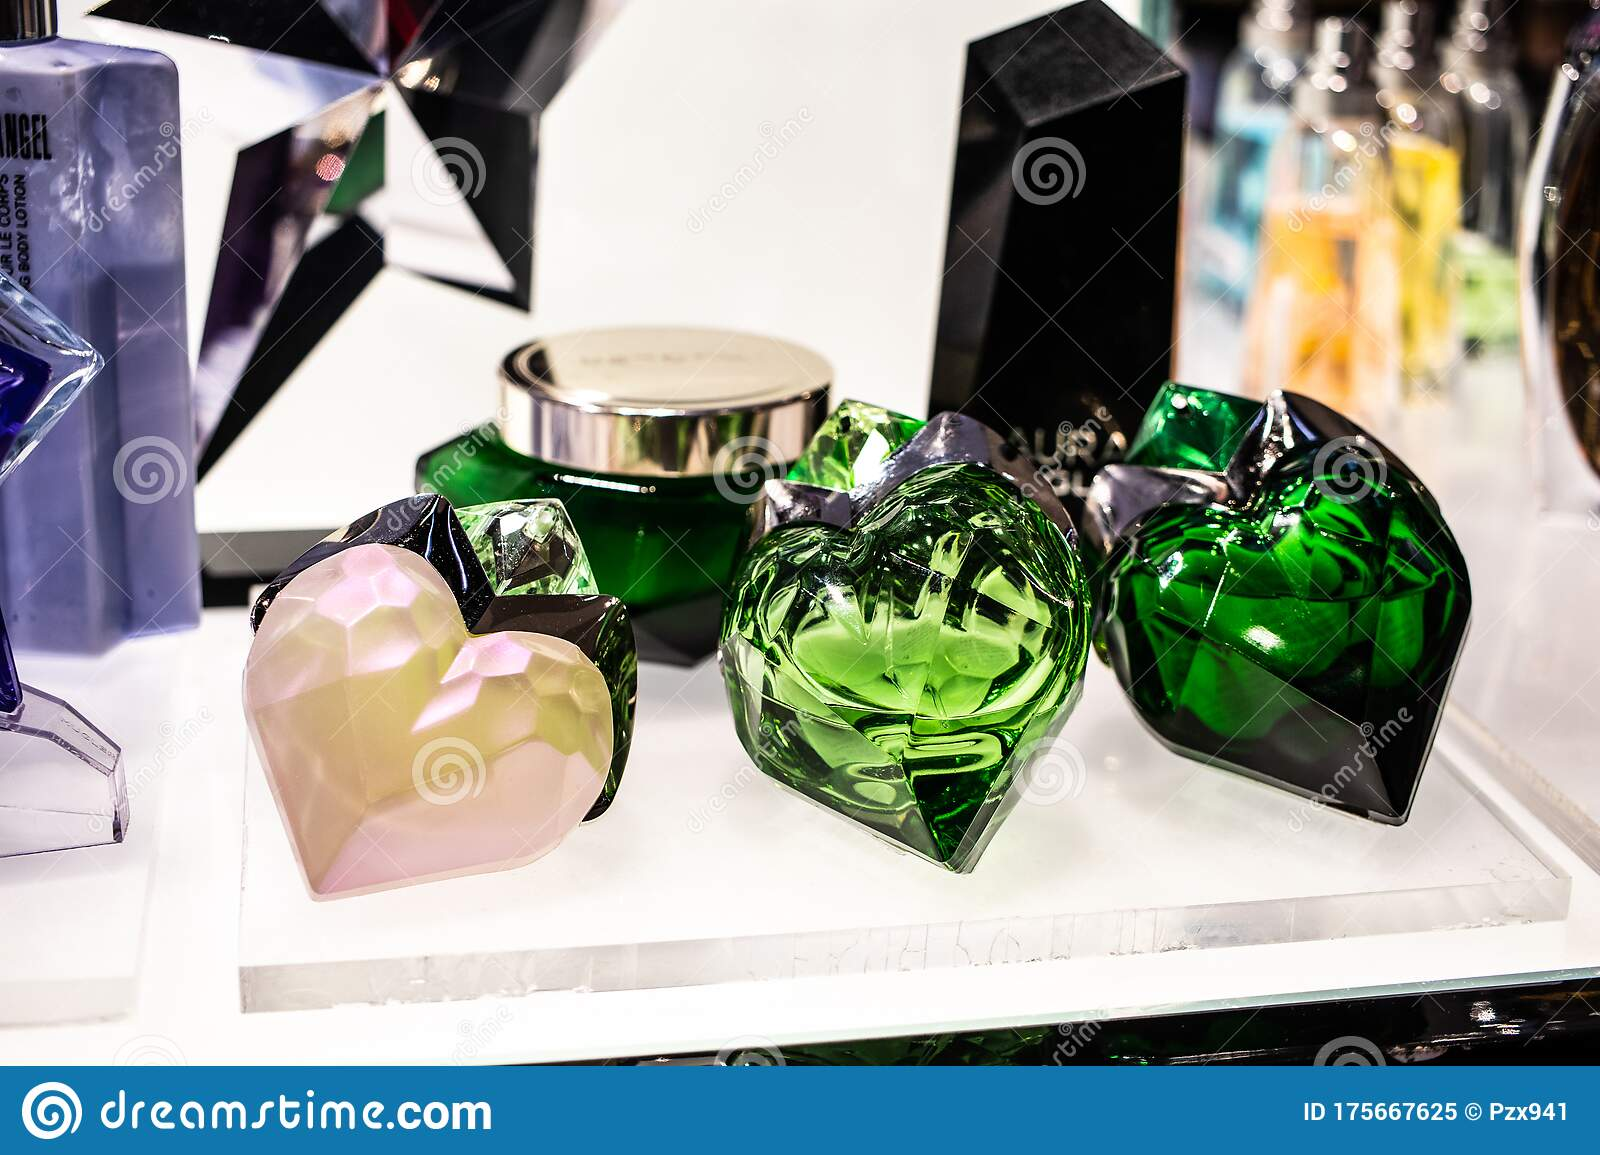 Thierry Mugler Perfume On The Shop Display For Sale Fragrance Created By Thierry Mugler French Fashion Designer Editorial Image Image Of Fashion Fragrance 175667625